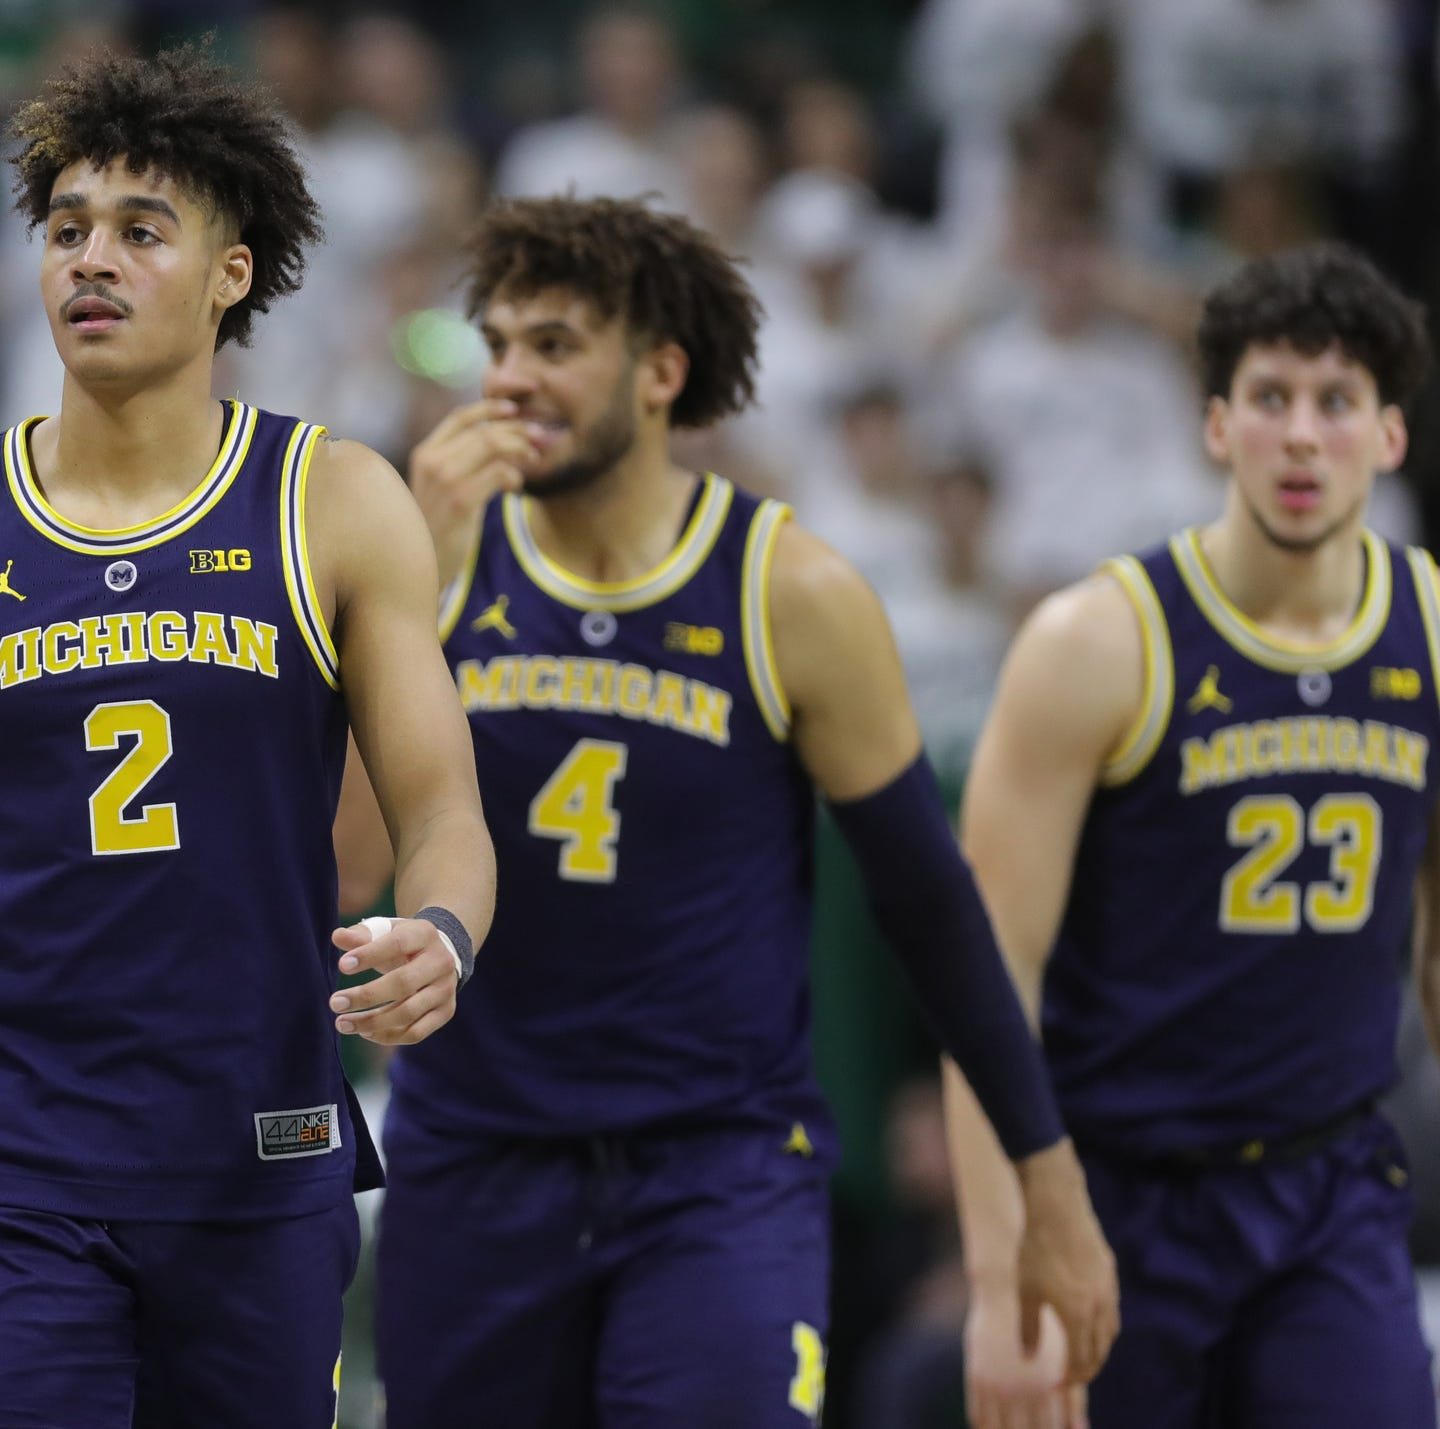 Michigan basketball's John Beilein on loss to rival MSU: 'We imploded'